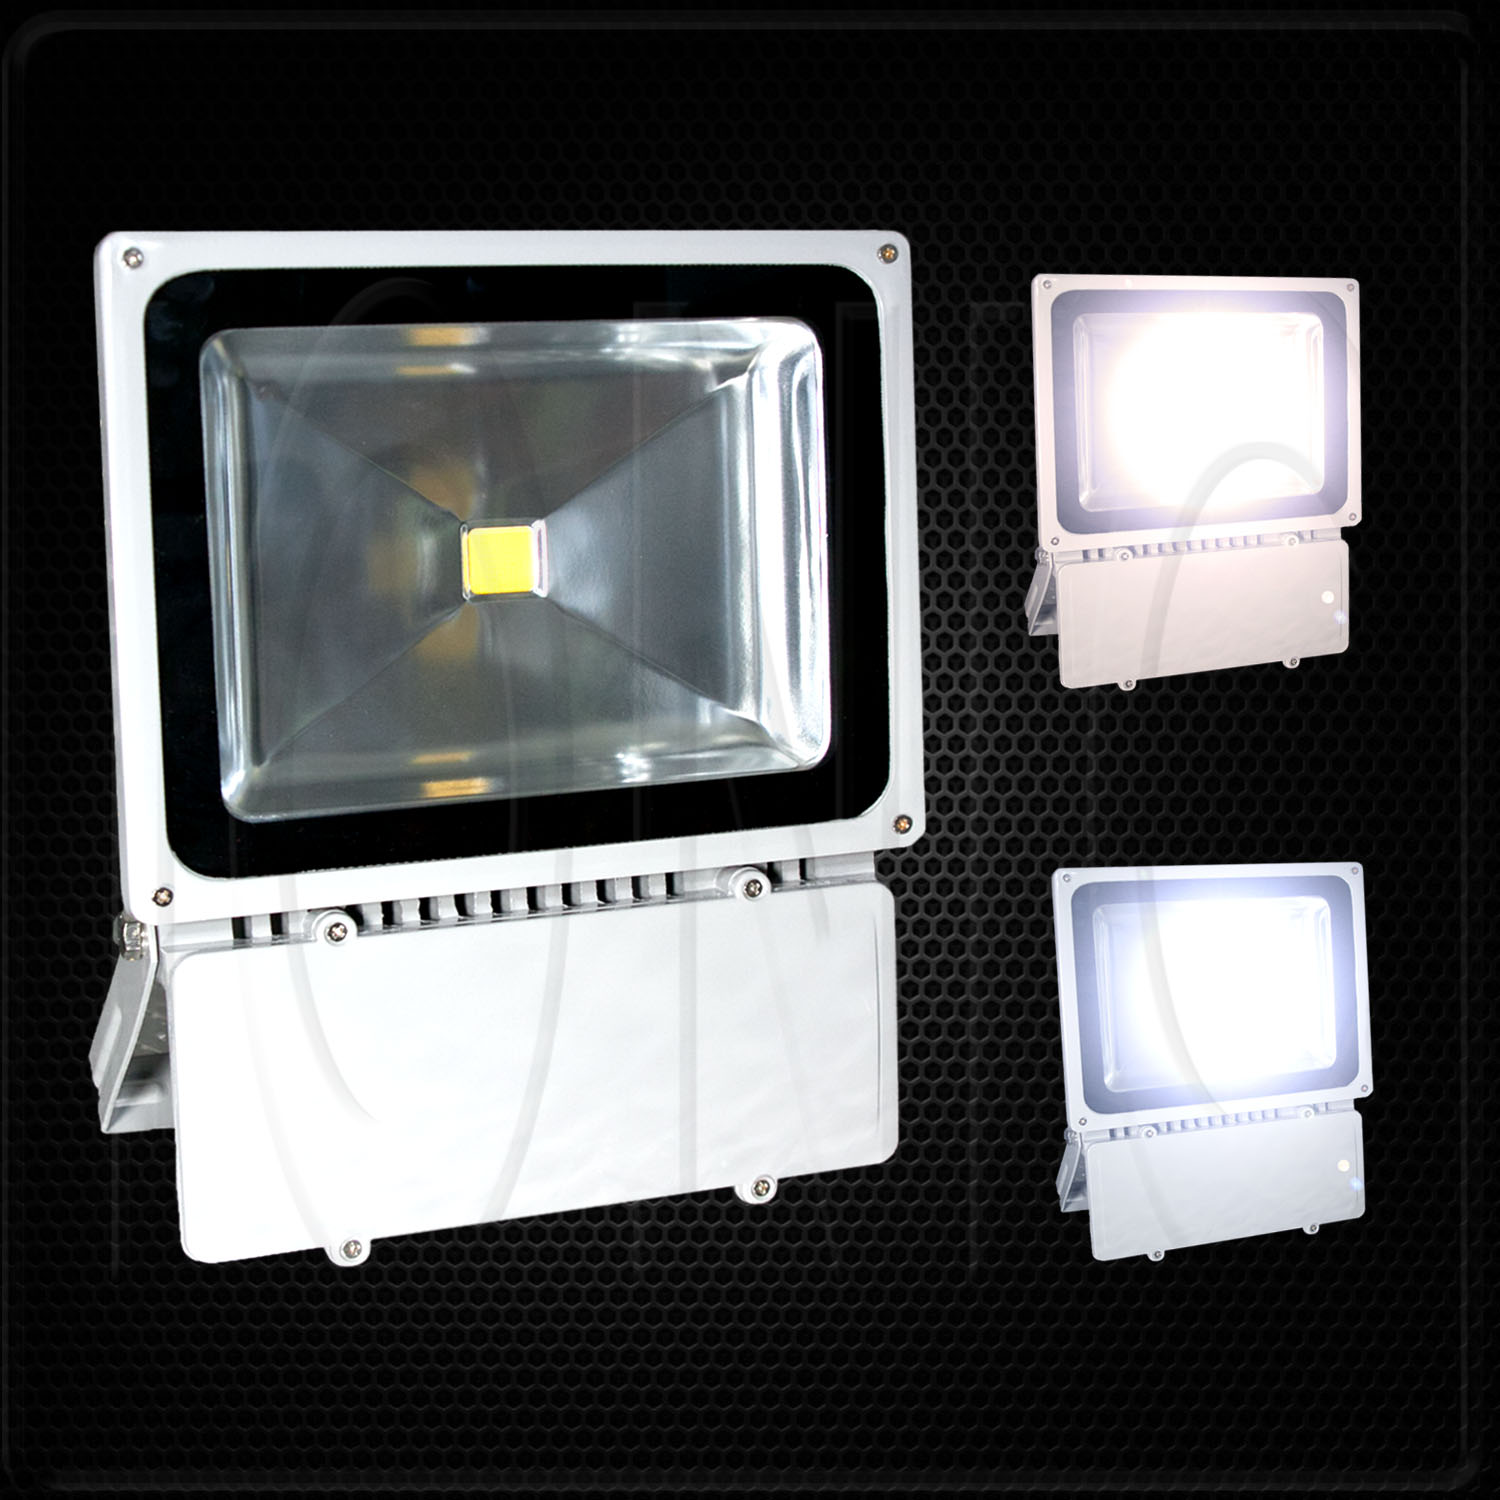 100w 120v led flood light day outdoor landscape garden for 120v landscape lighting